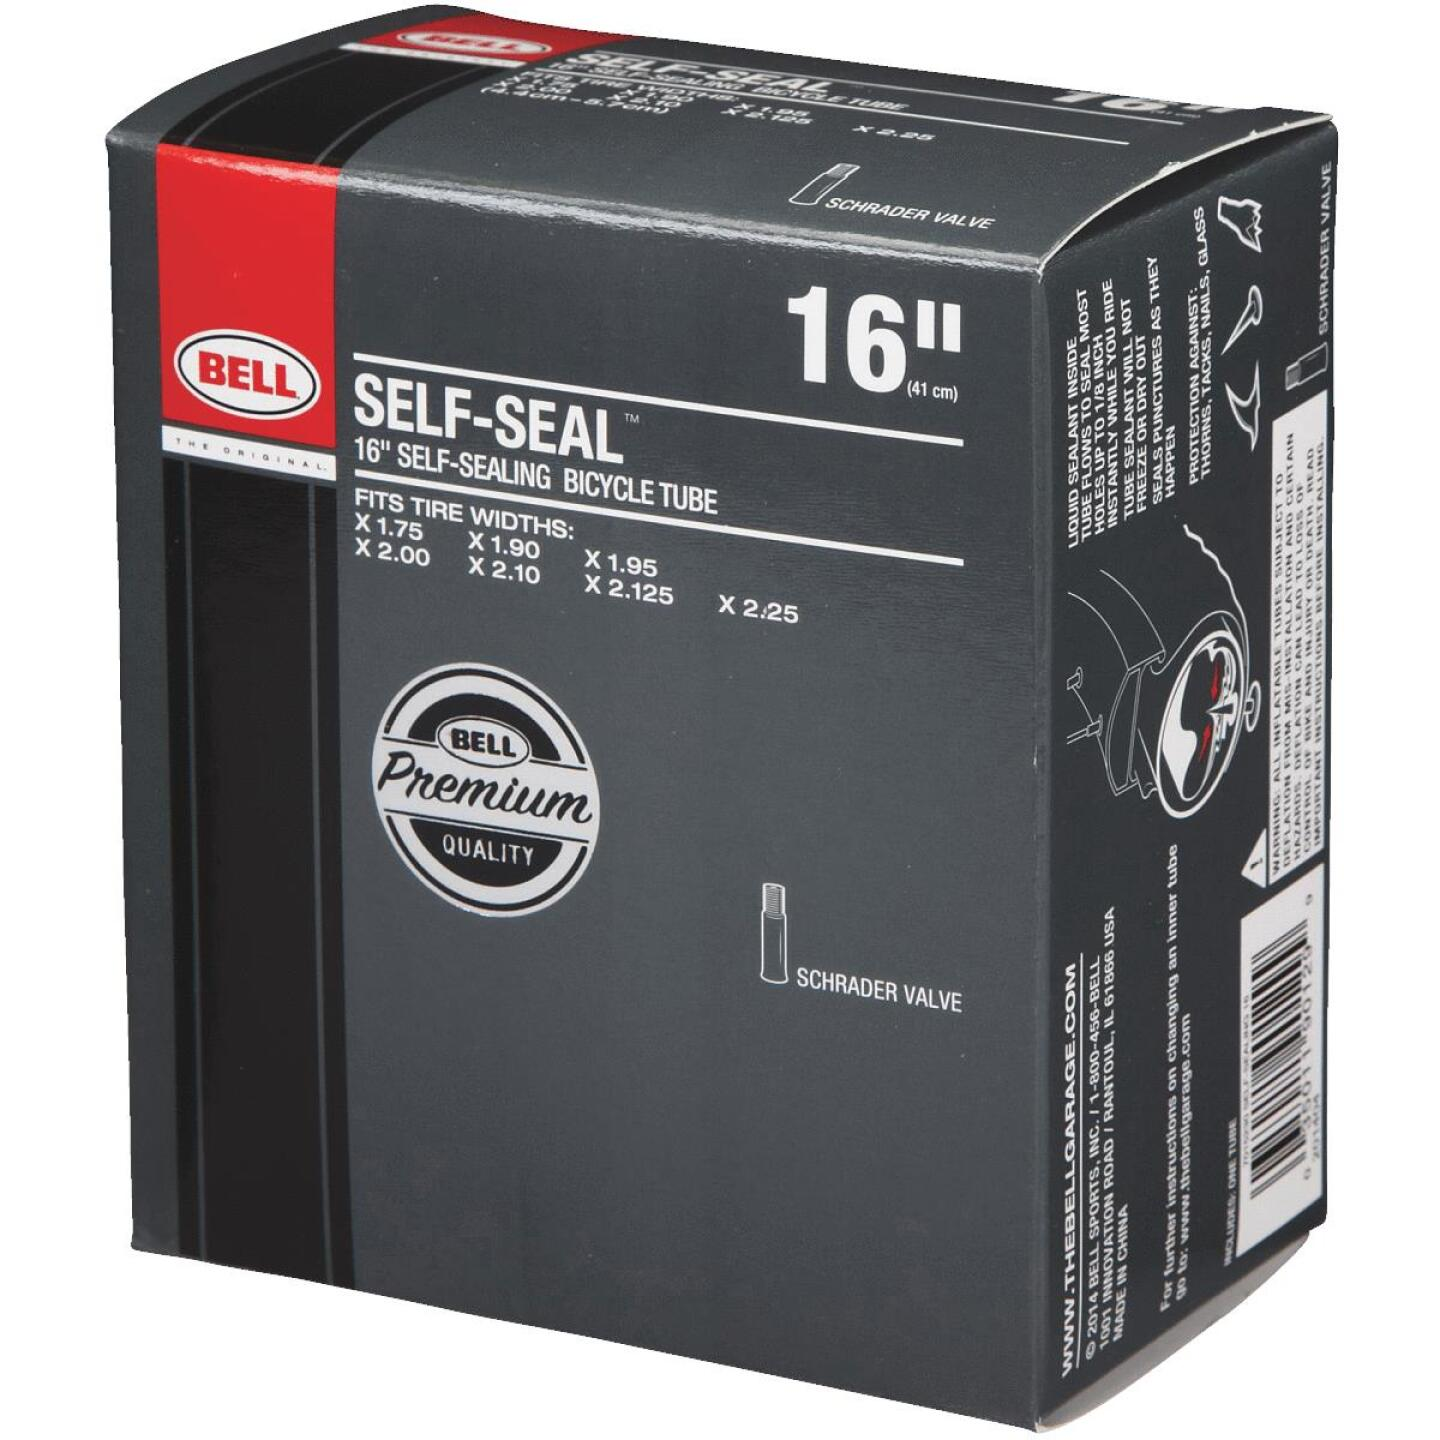 Bell Sports 16 In. Self-Sealing Bicycle Tube Image 3